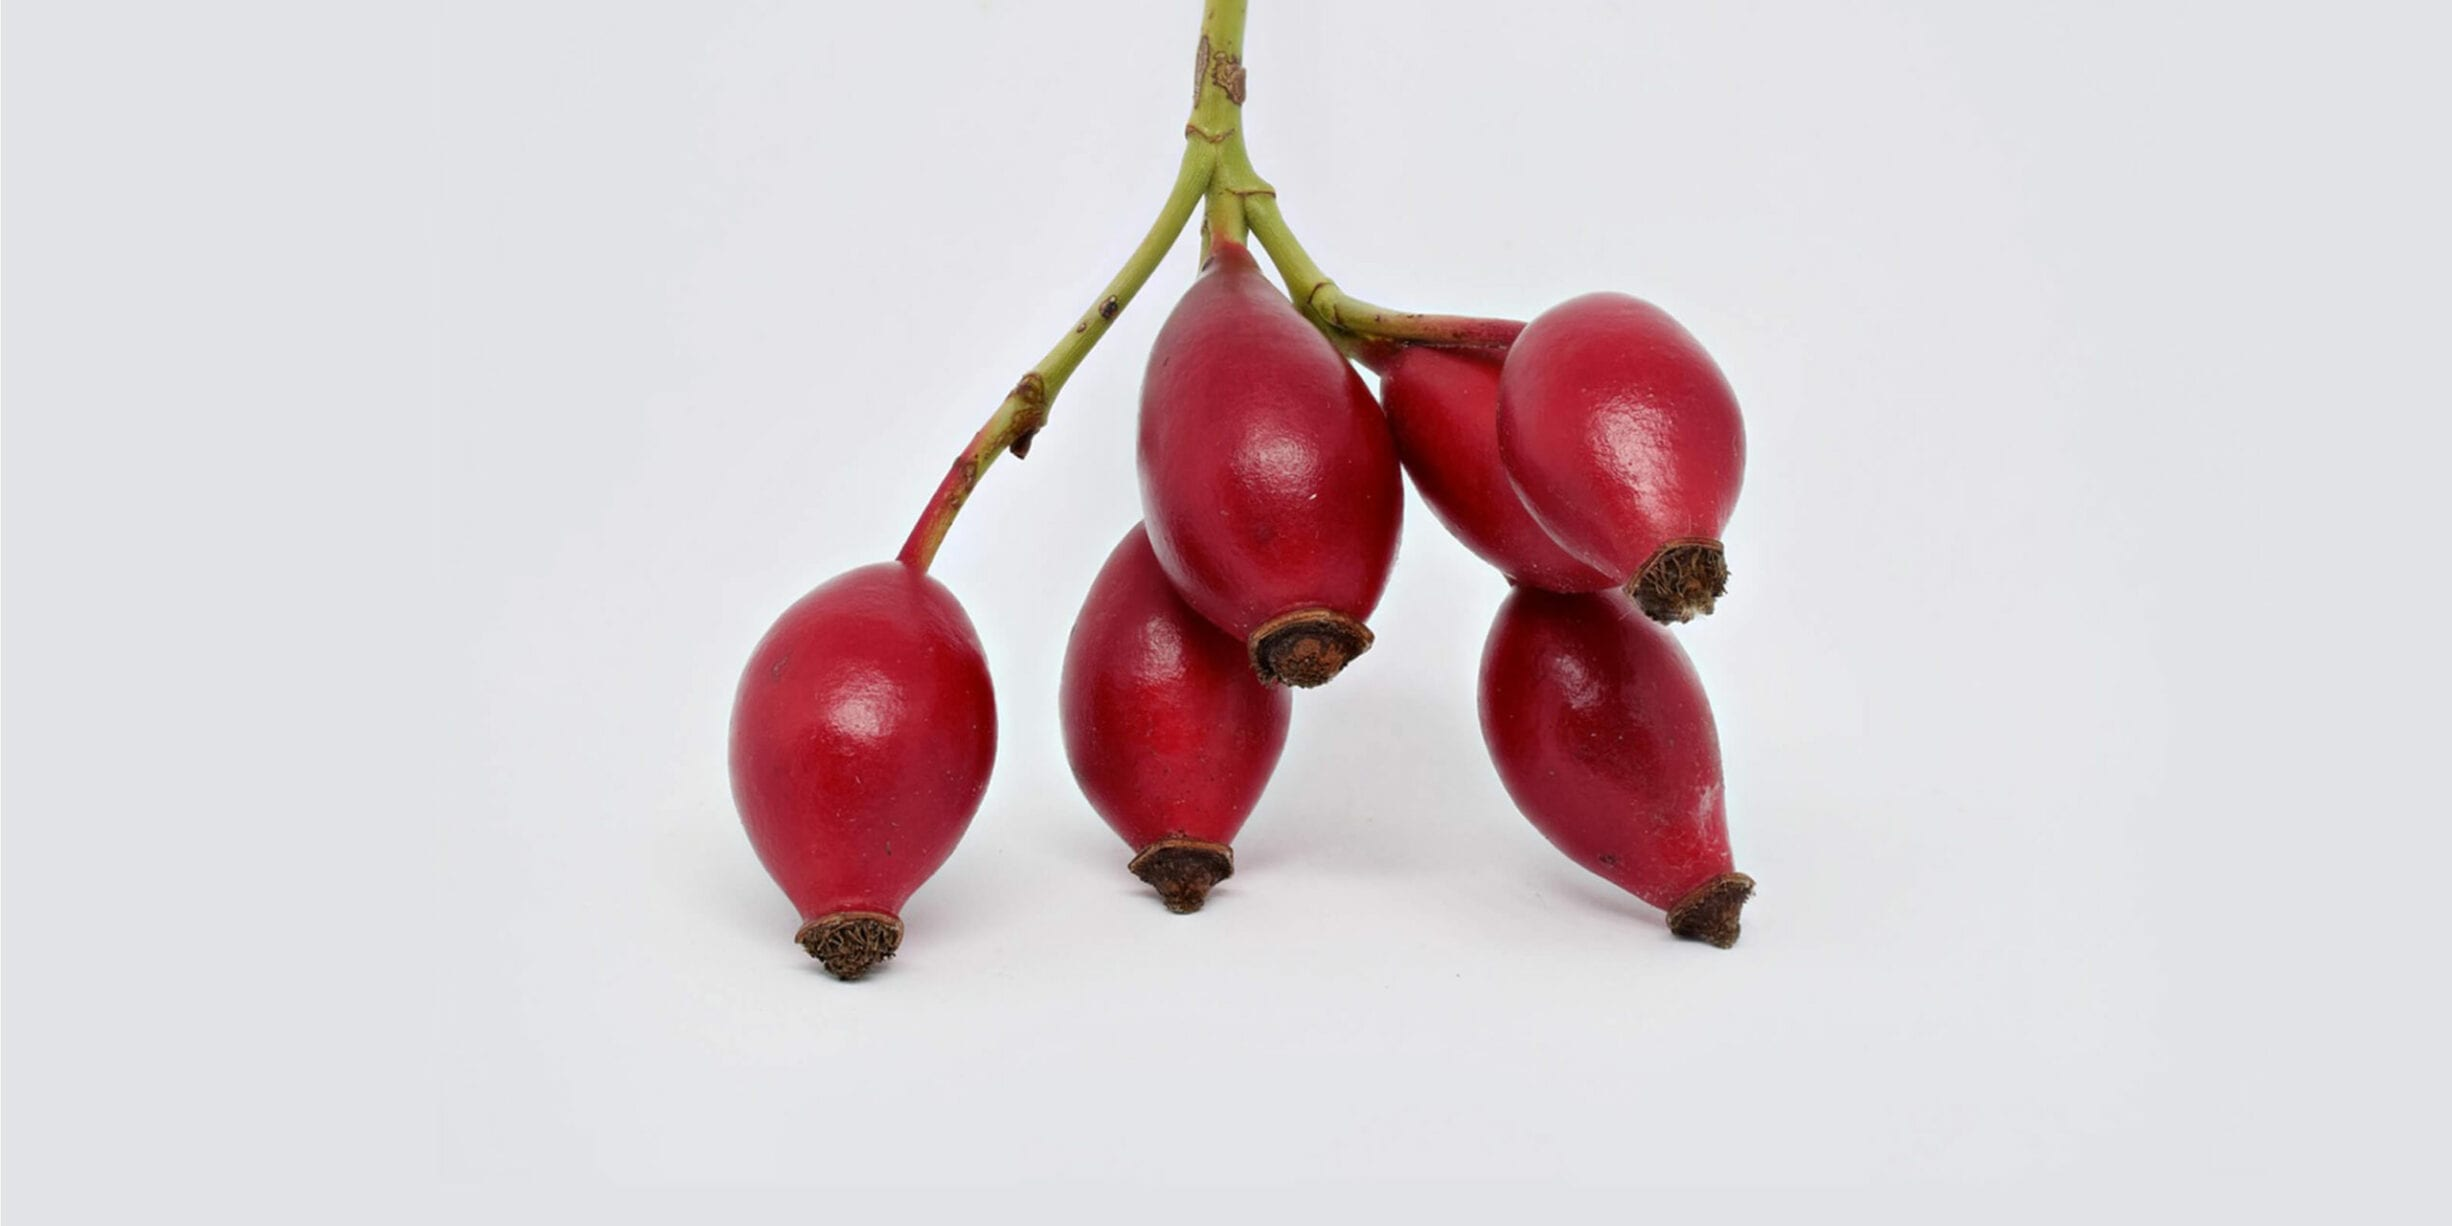 rosehip fruits on plant